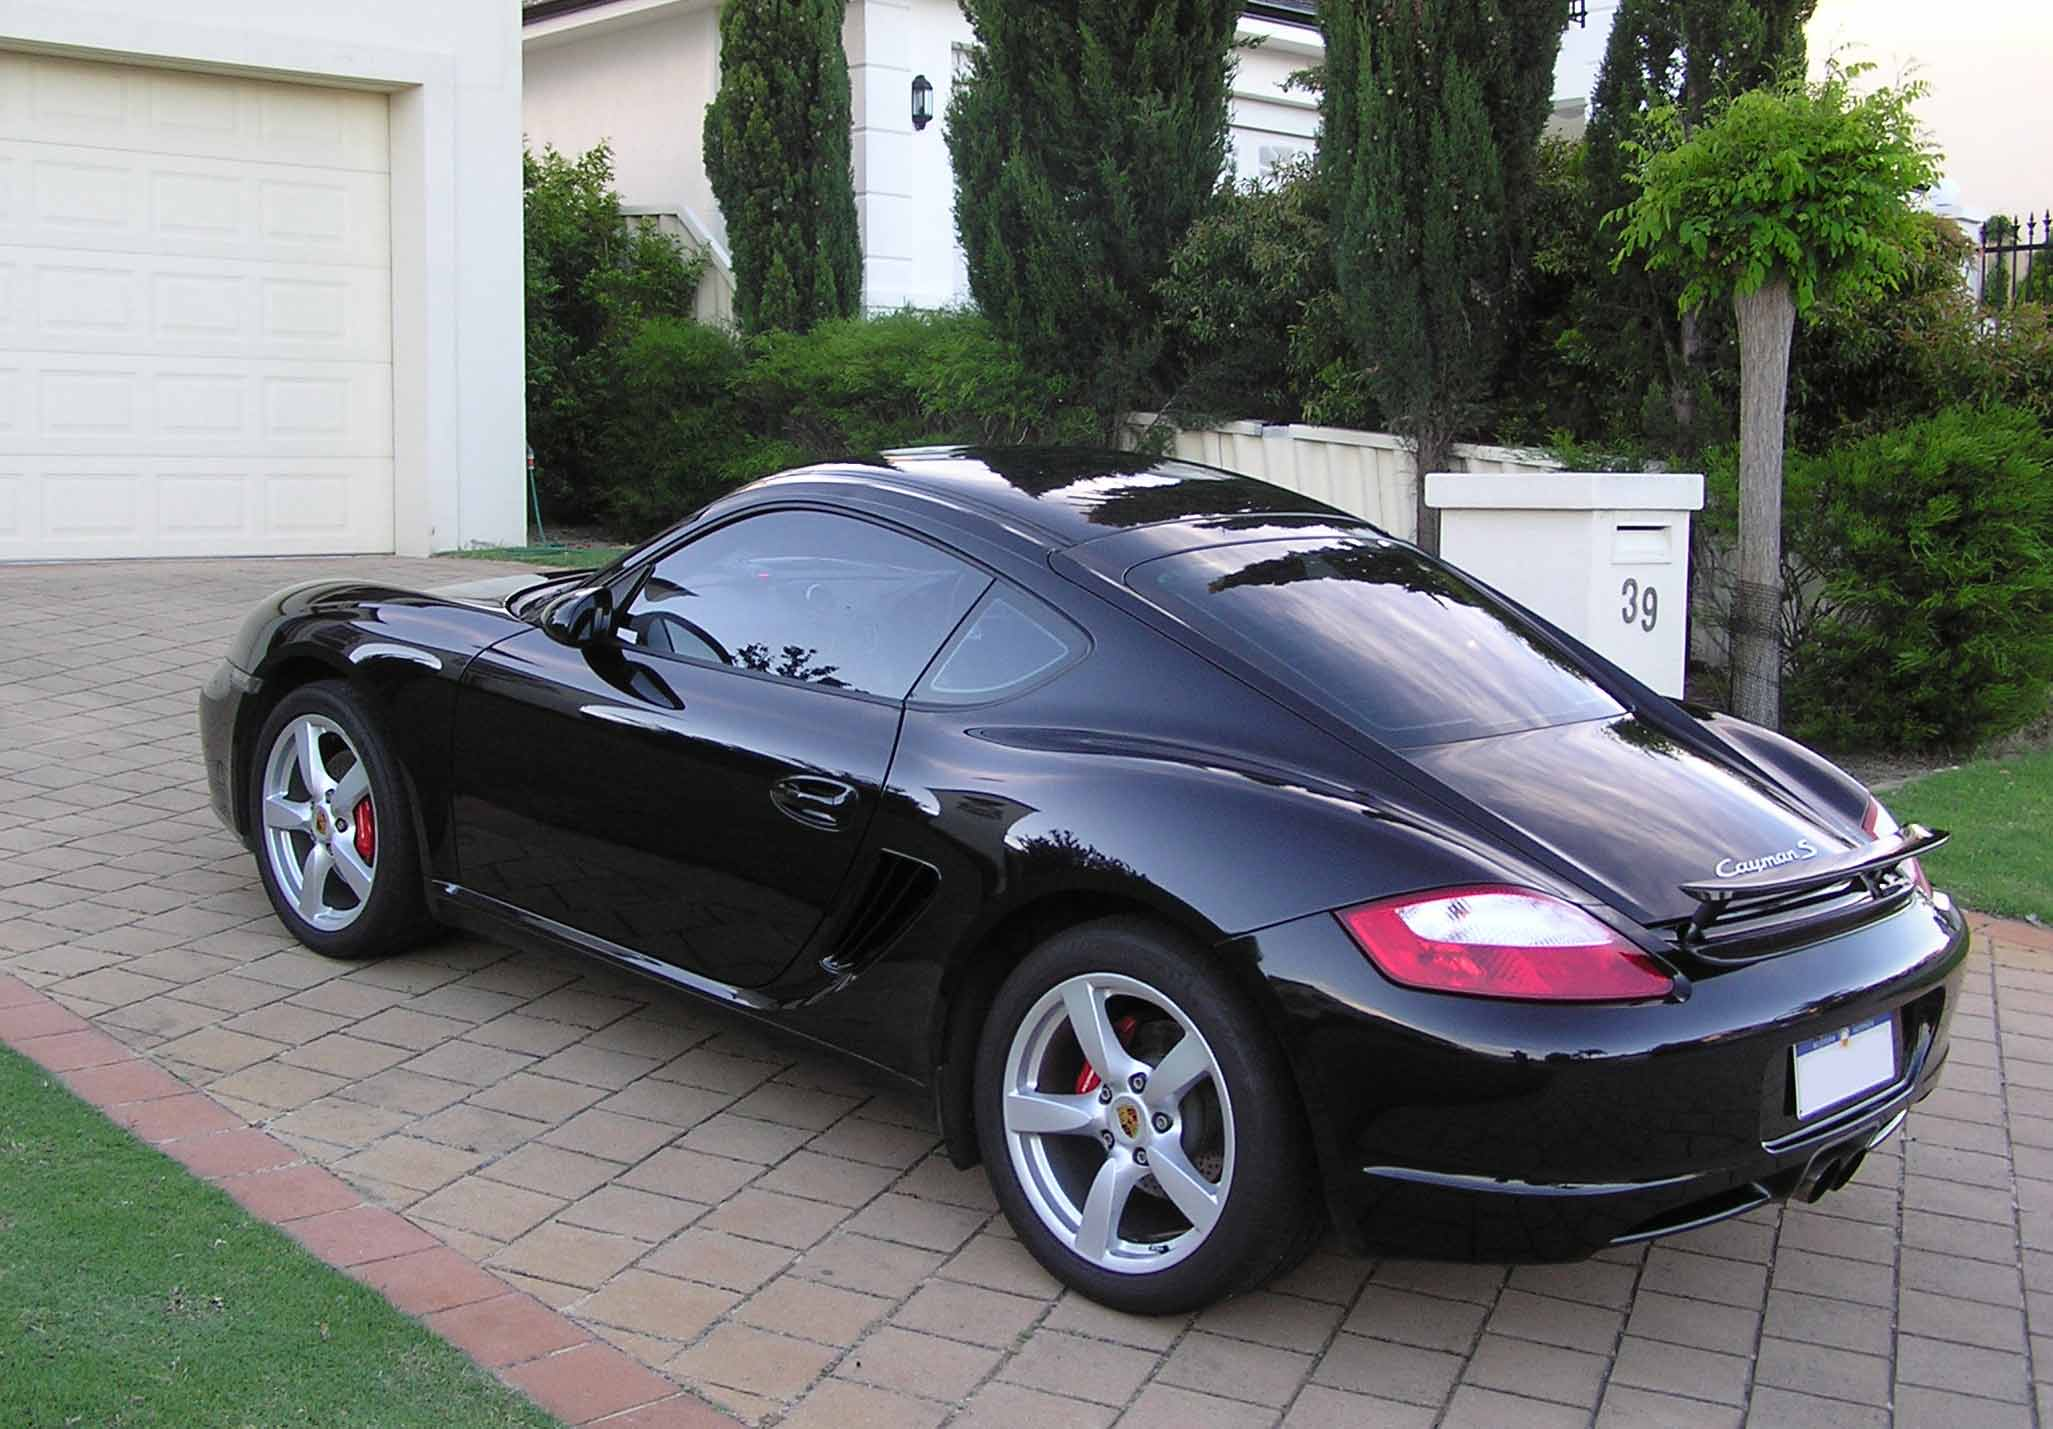 We understand that when life changes, your policy may need to as well, which is why. 2006 Porsche Cayman S 1/4 mile trap speeds 0-60